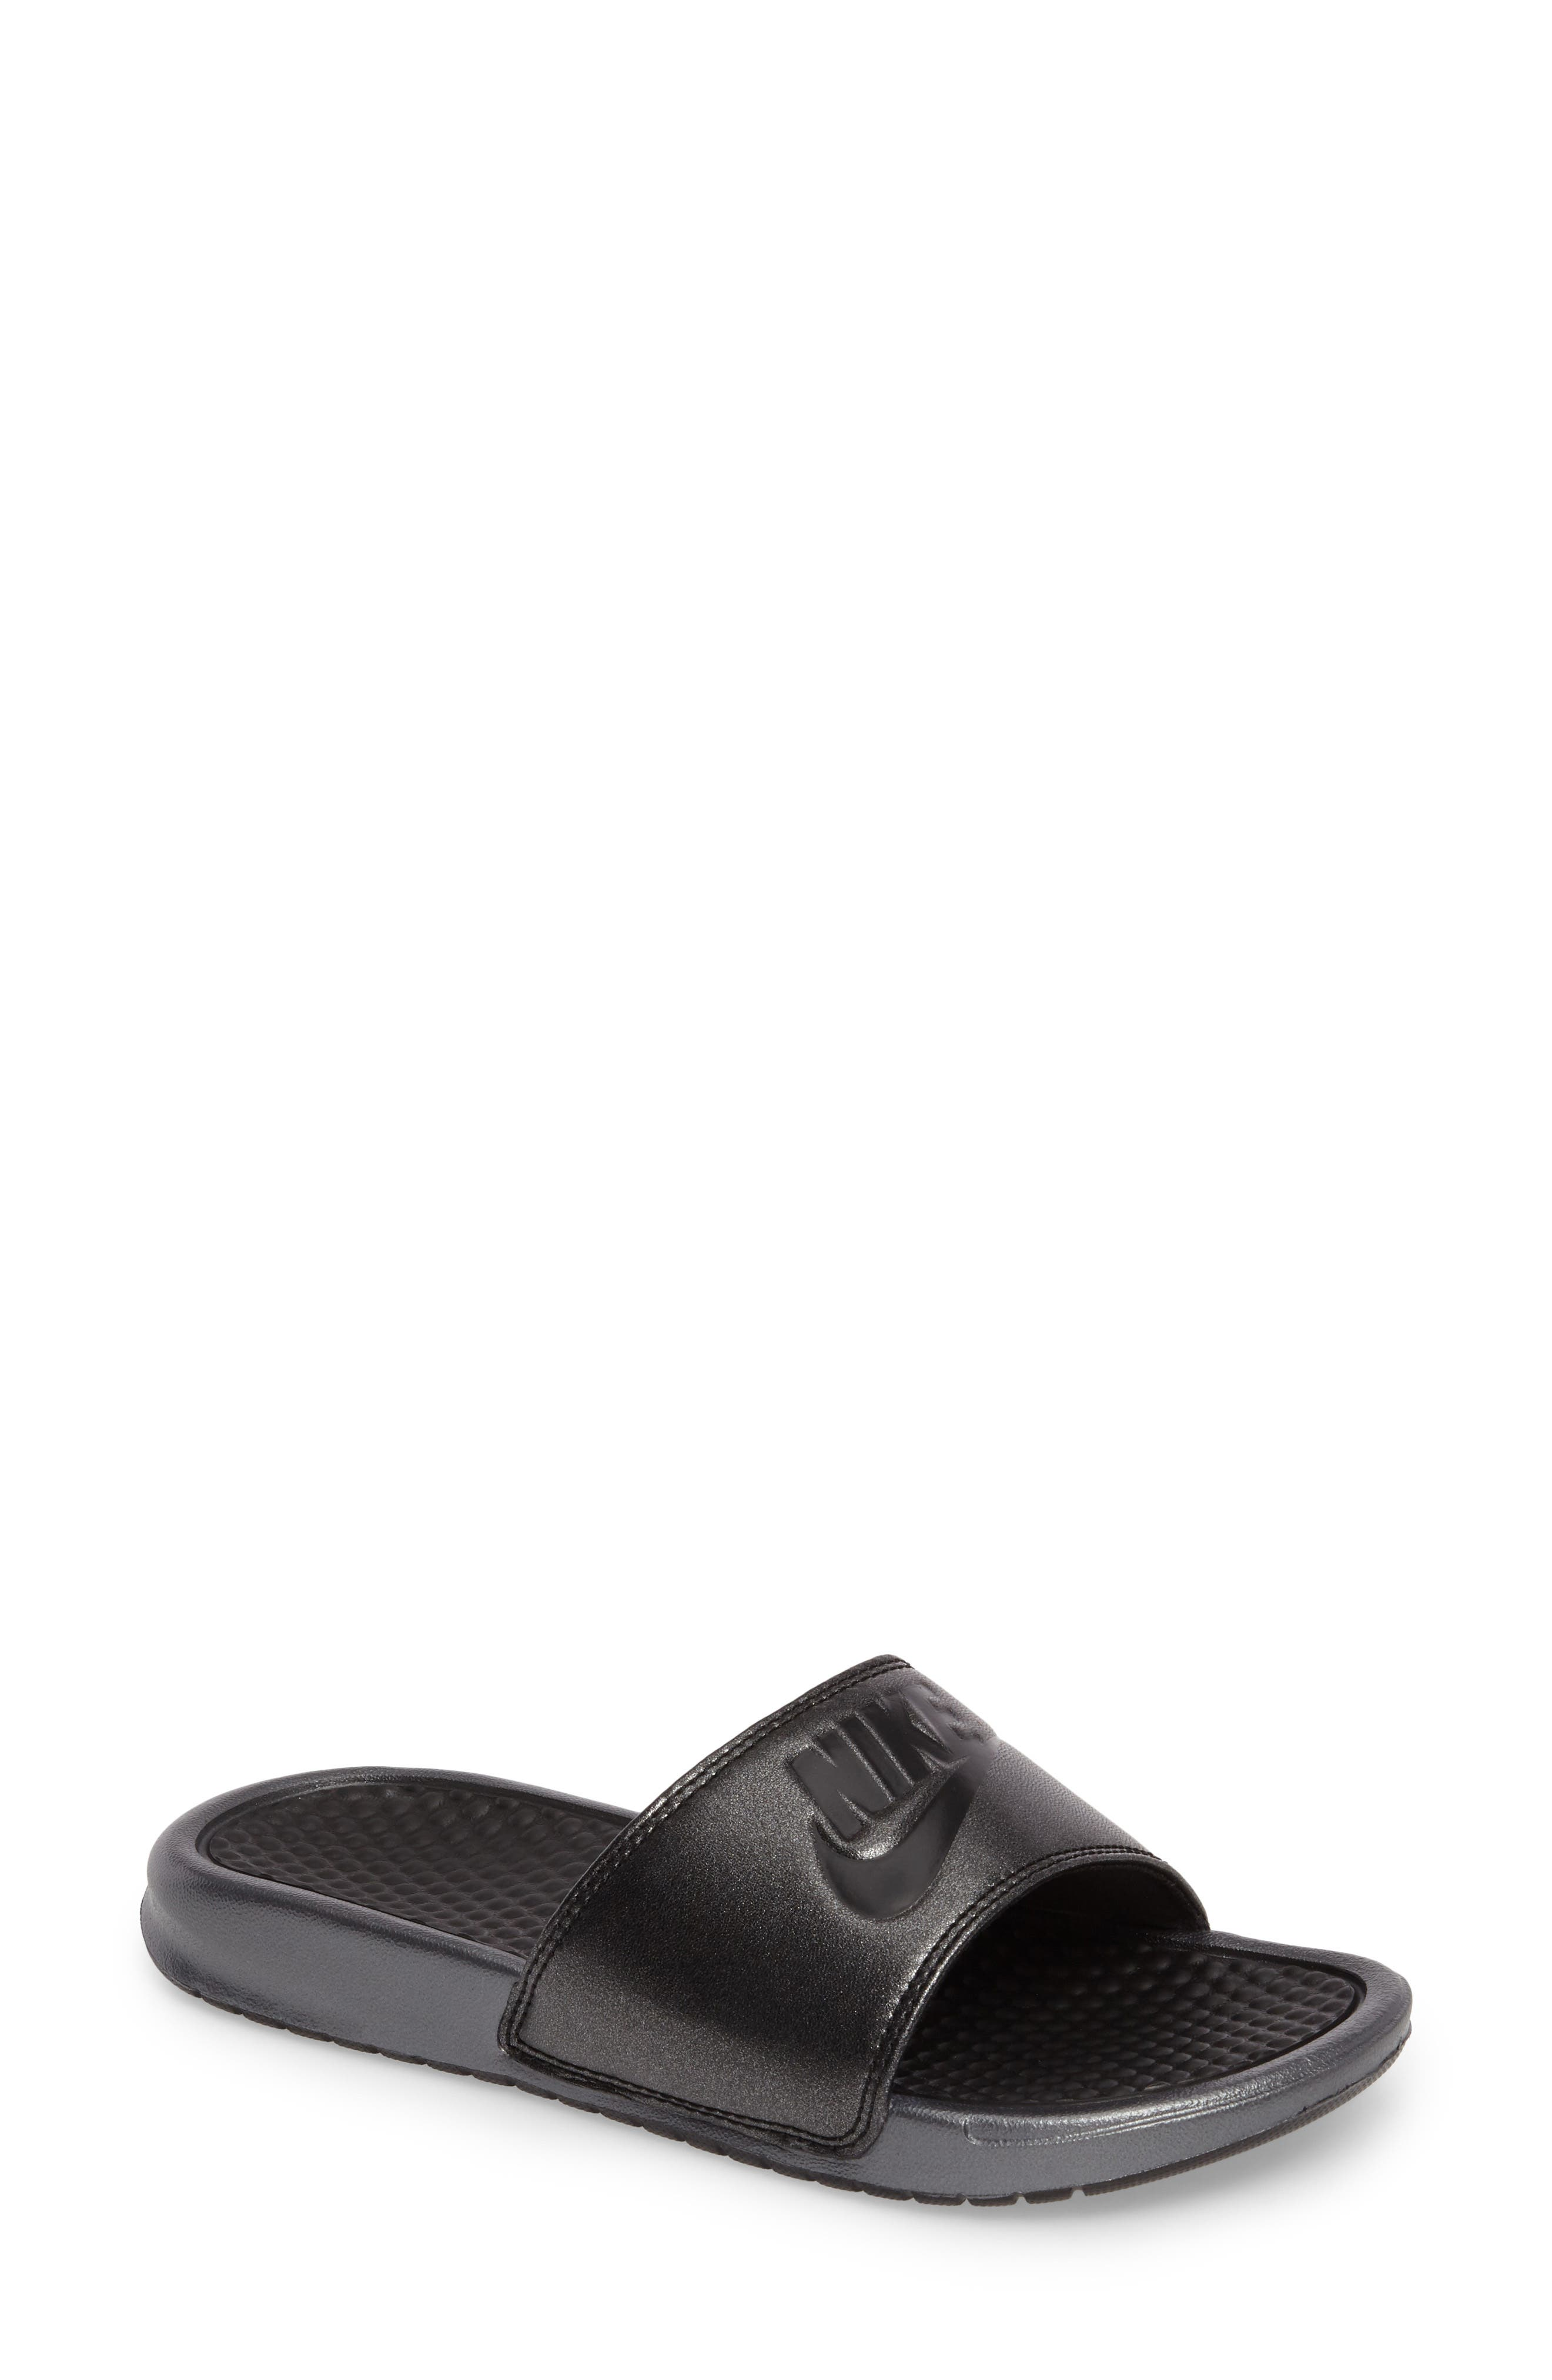 Benassi Slide Sandal,                         Main,                         color, 001